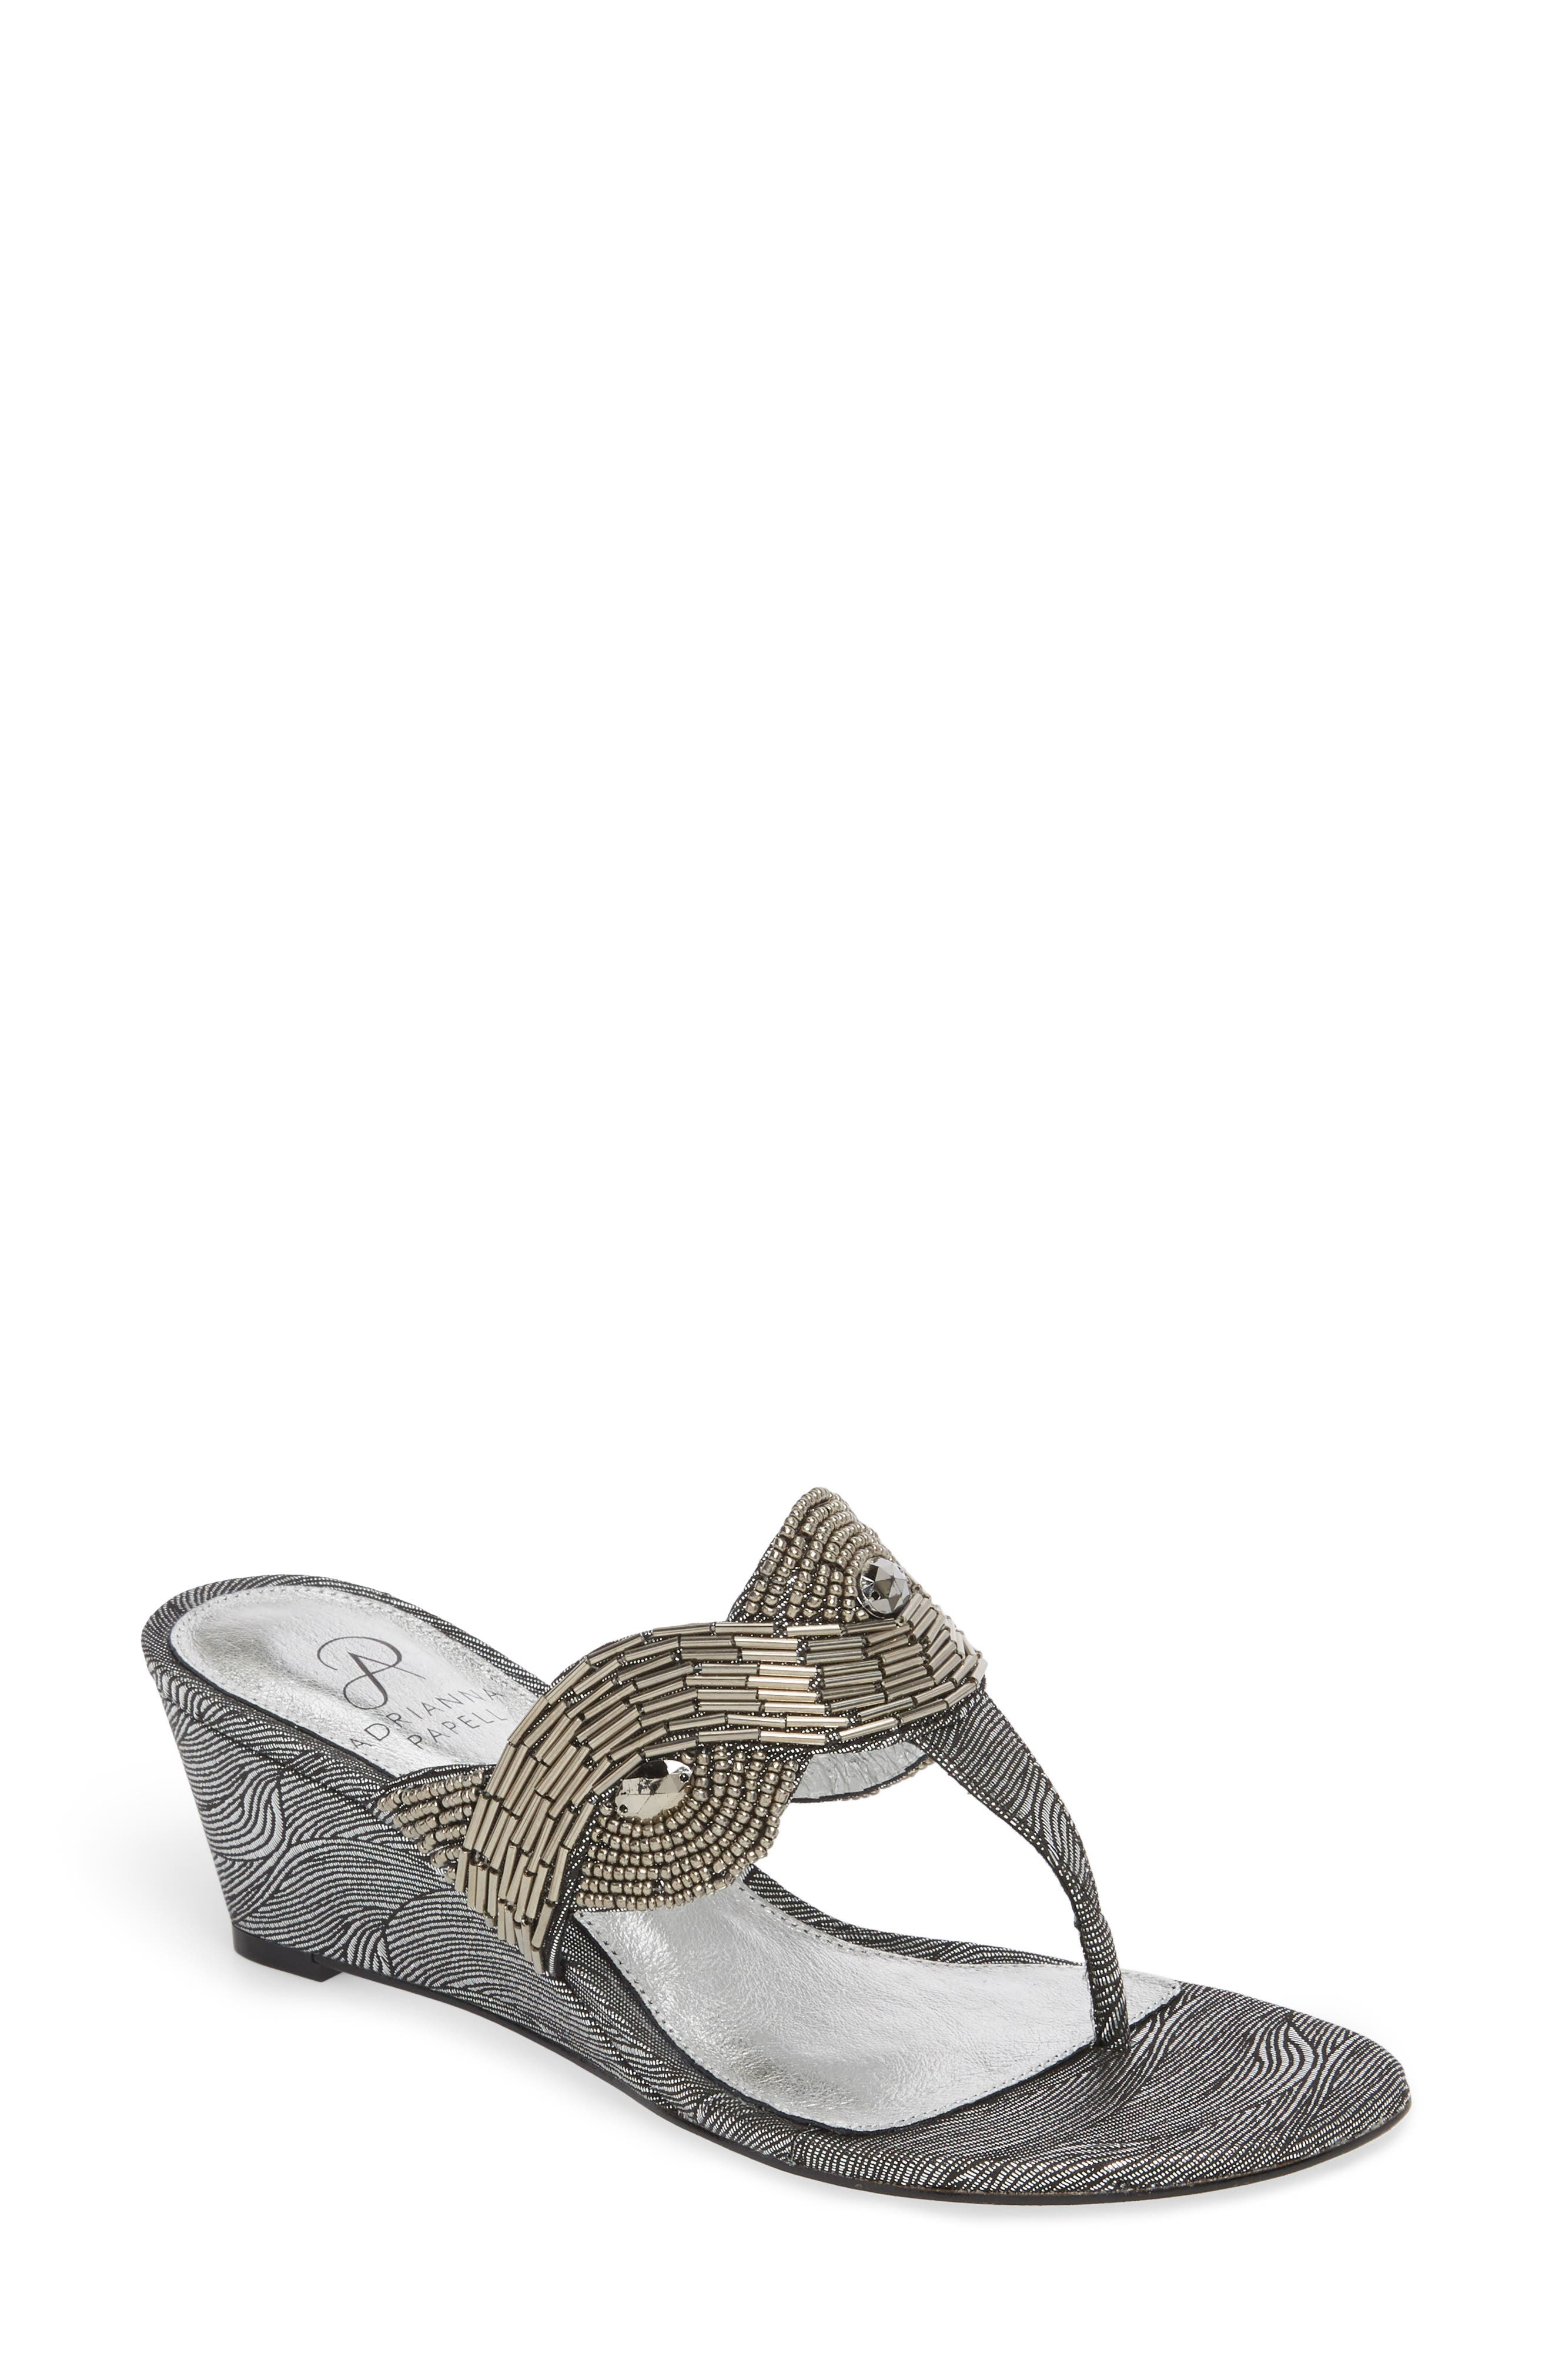 Adrianna Papell Women's Coco Beaded Wedge Sandal skzQy